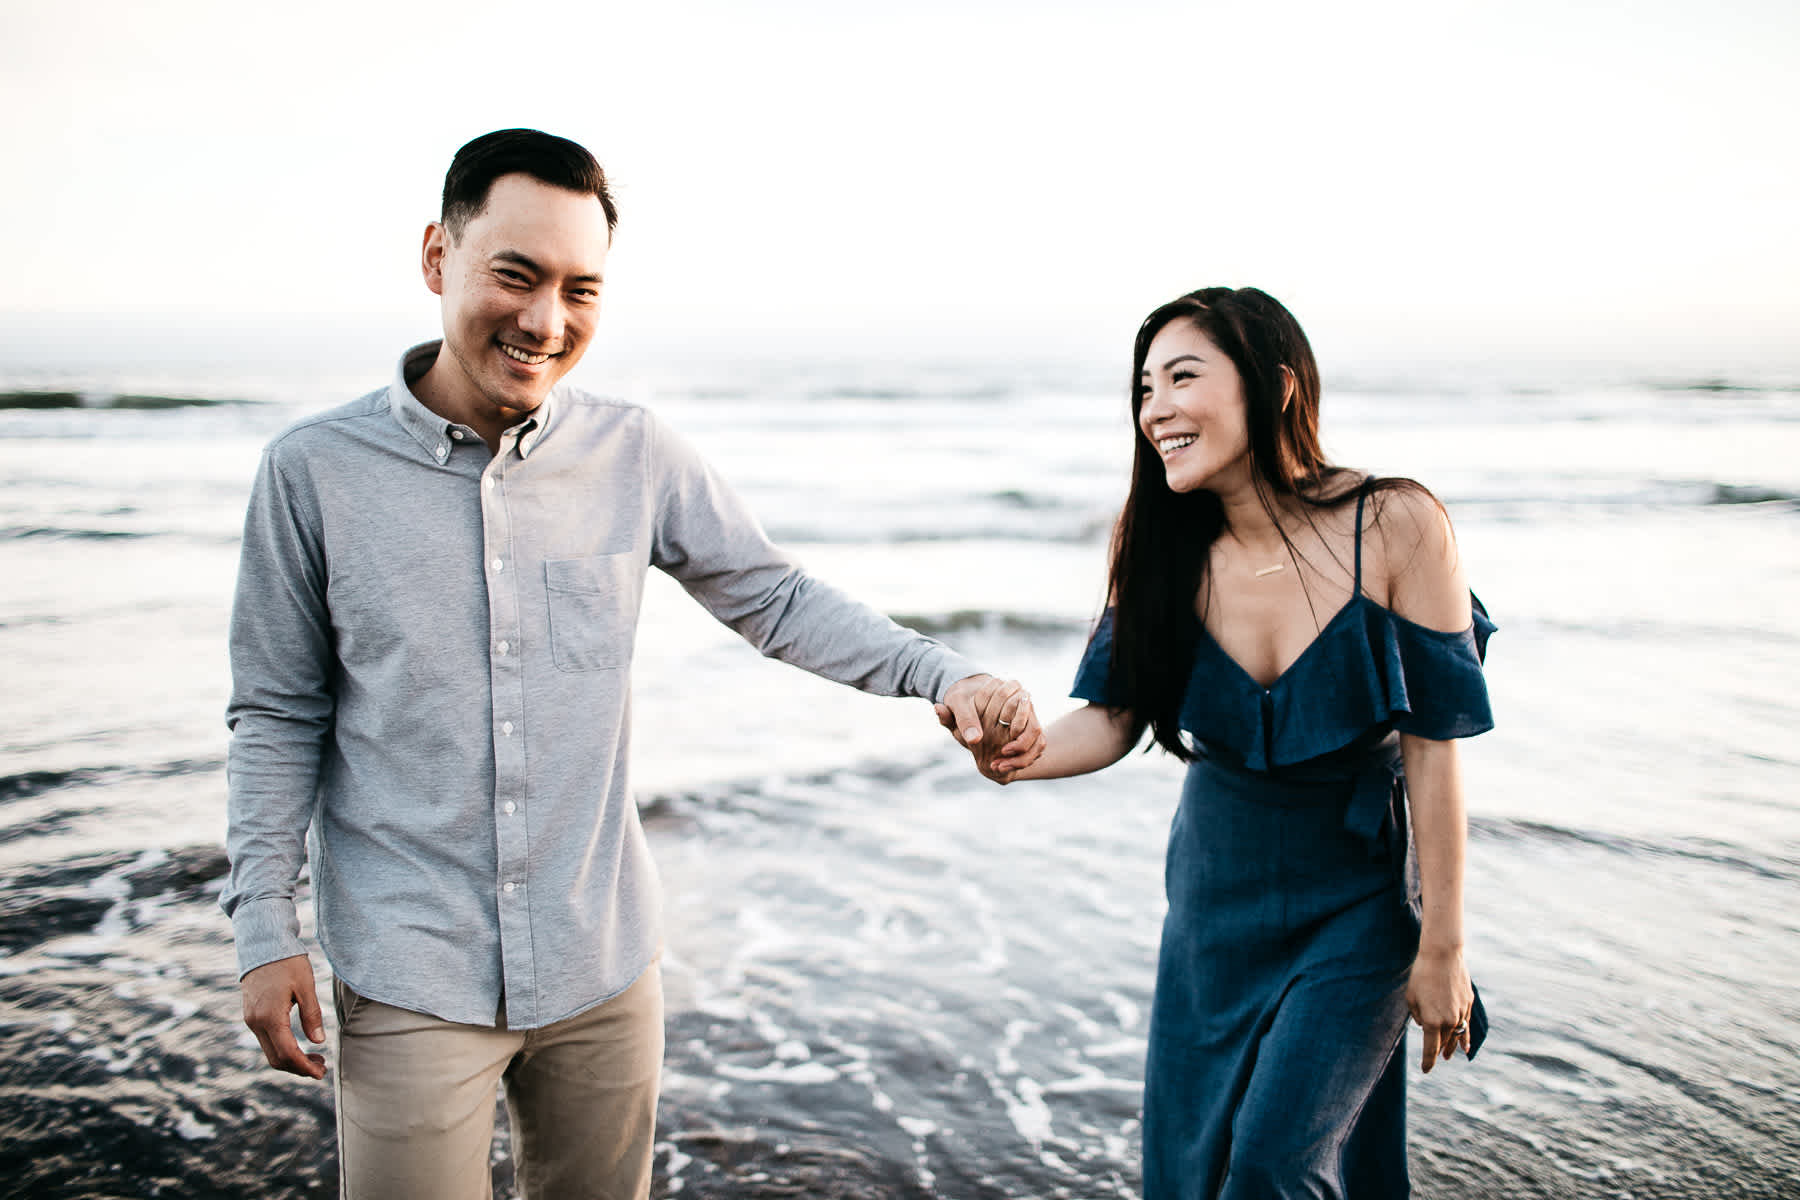 stinson-beach-muir-woods-sf-fun-quirky-engagement-session-26